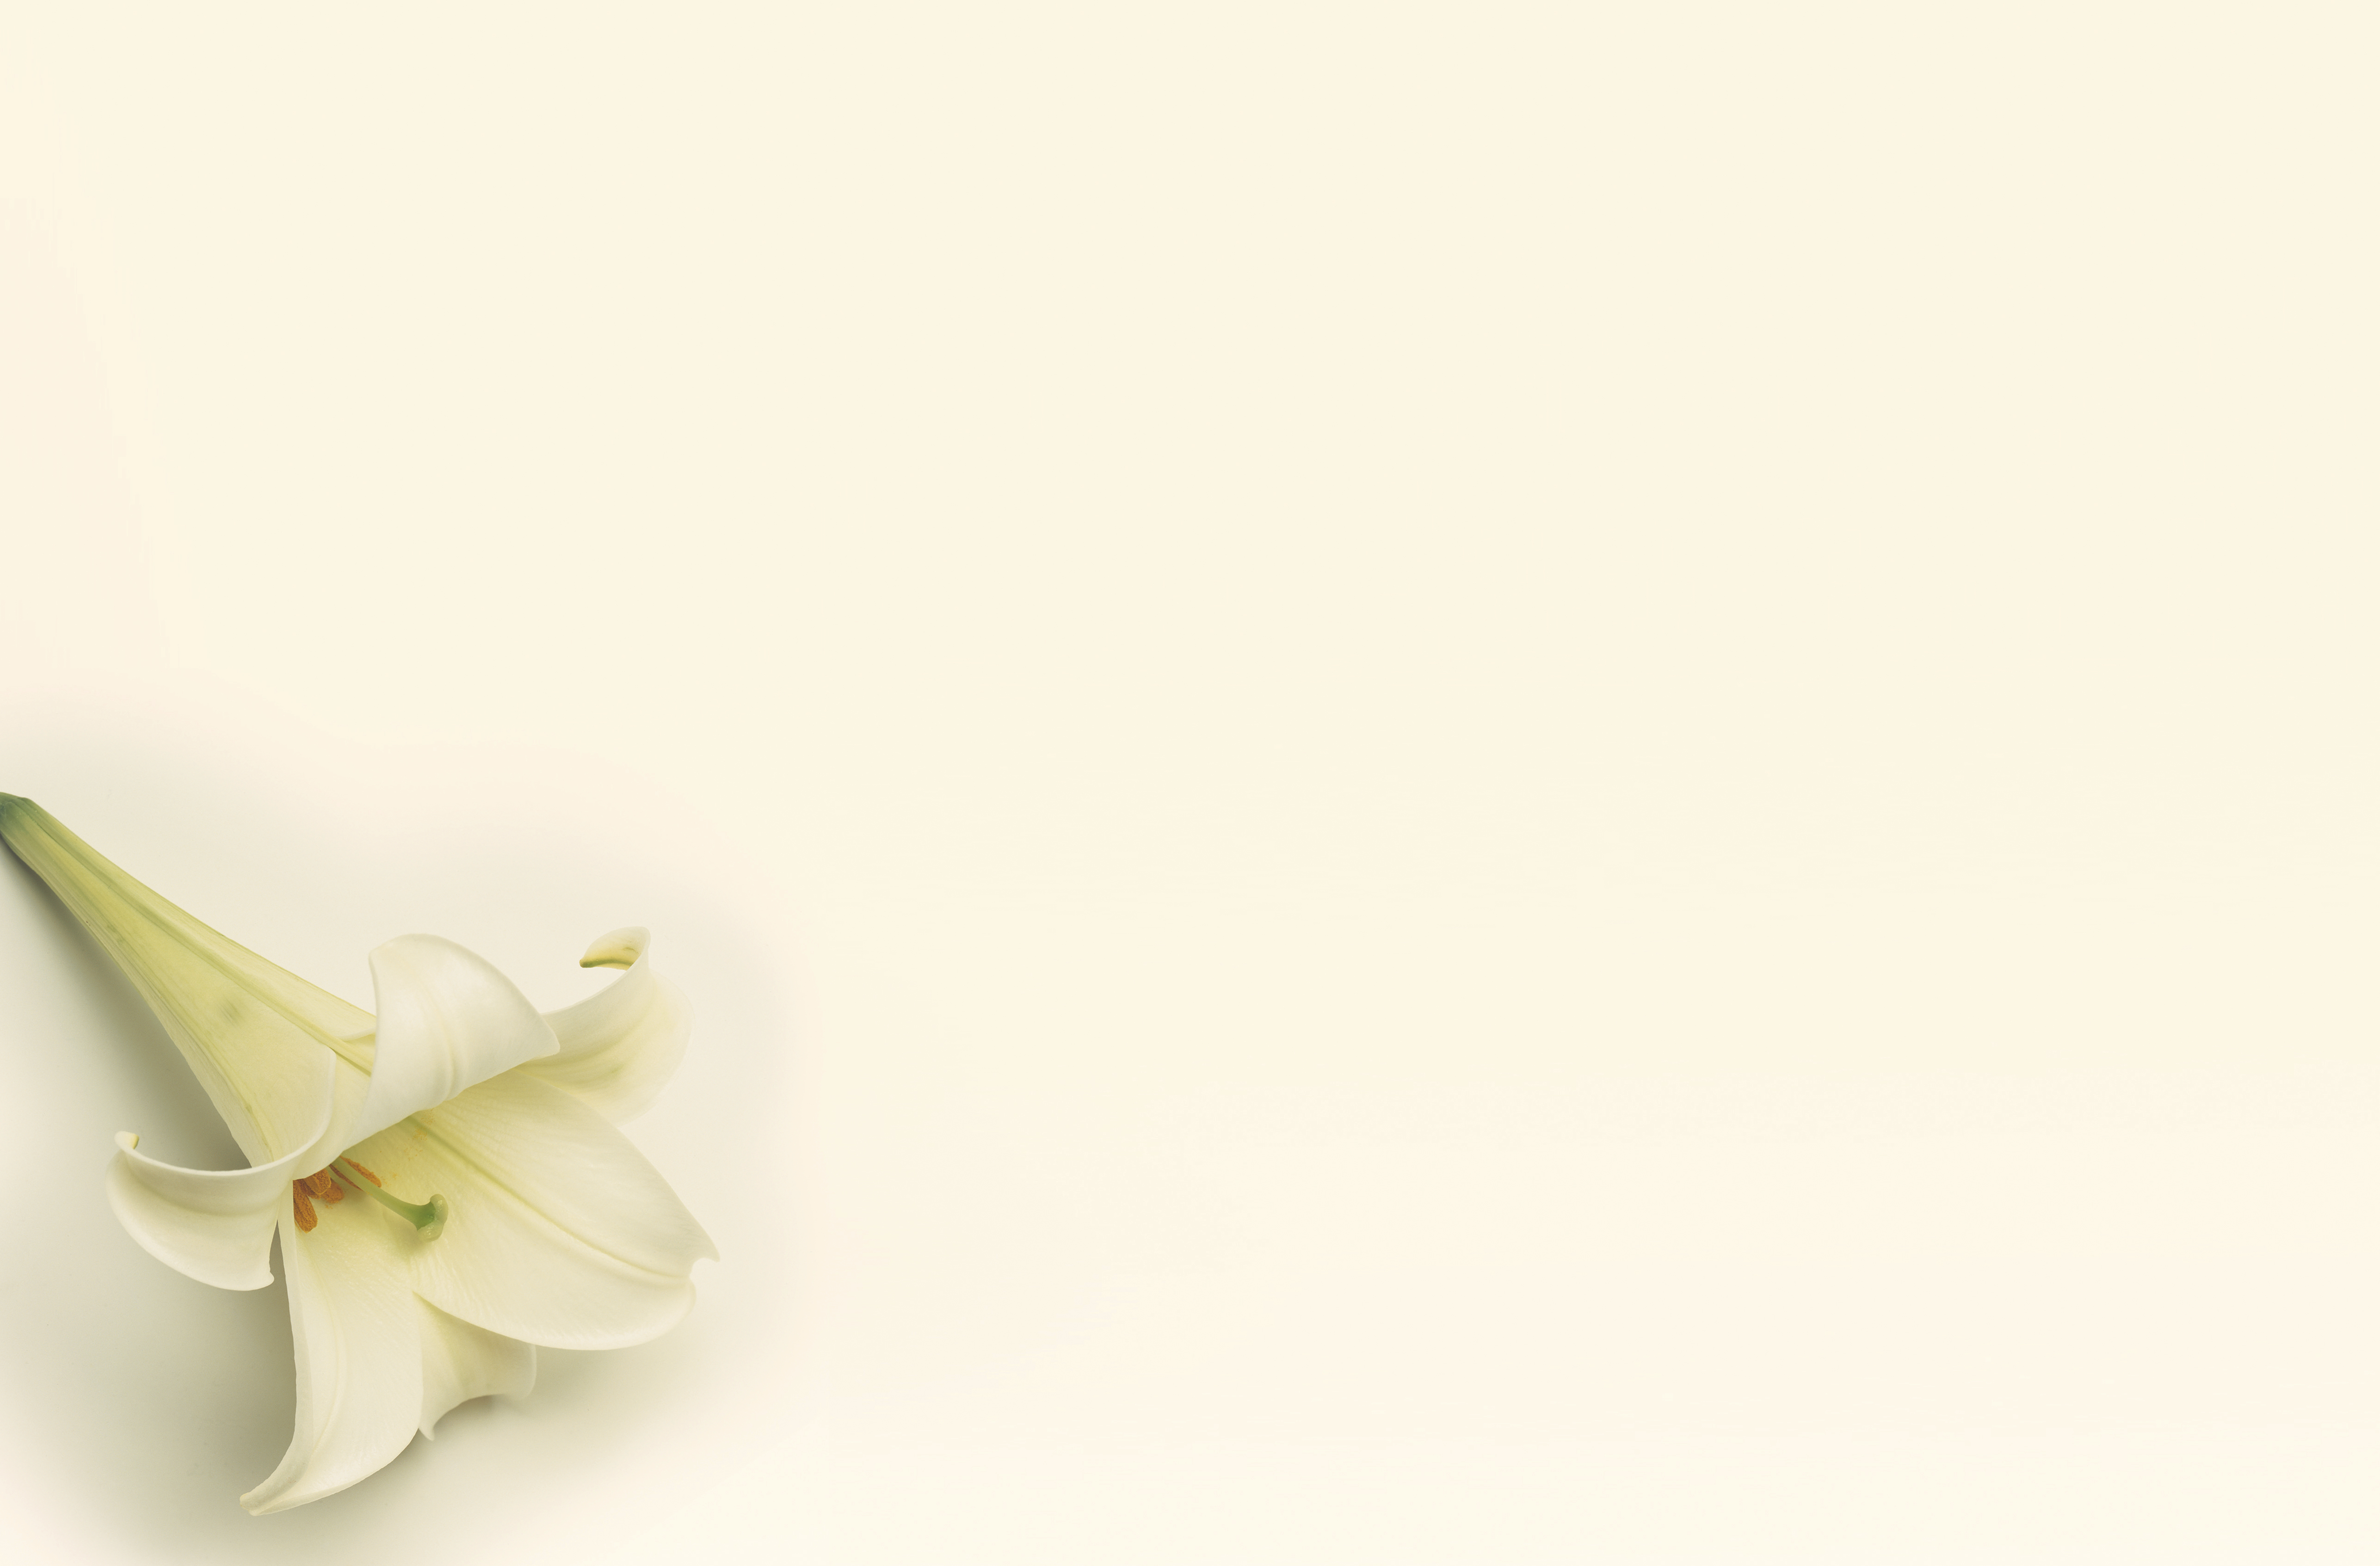 A white lily on a plain background.